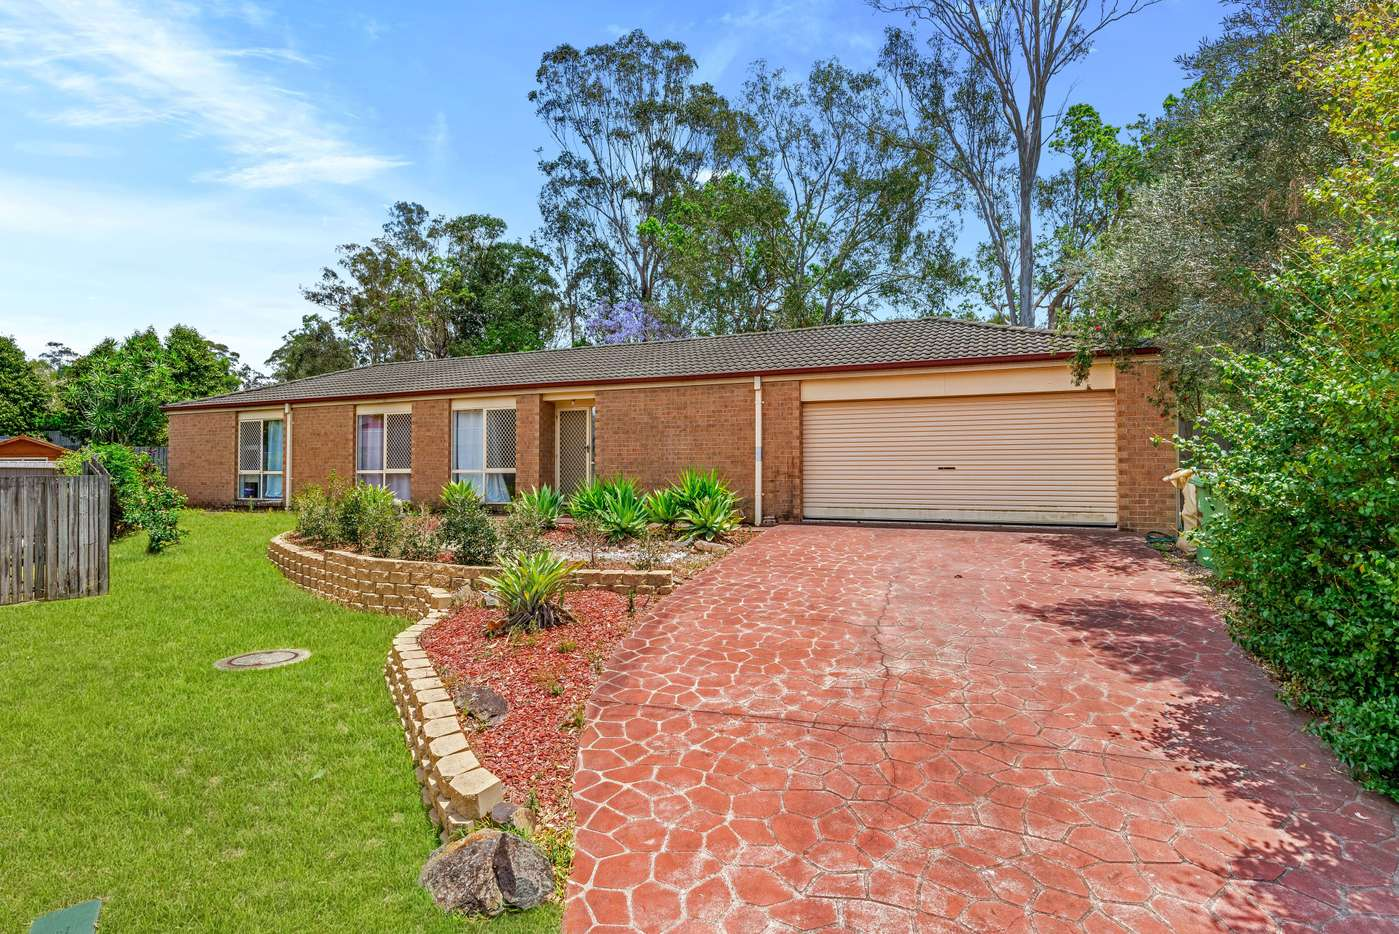 Main view of Homely house listing, 5 Kulara Place, Petrie, QLD 4502